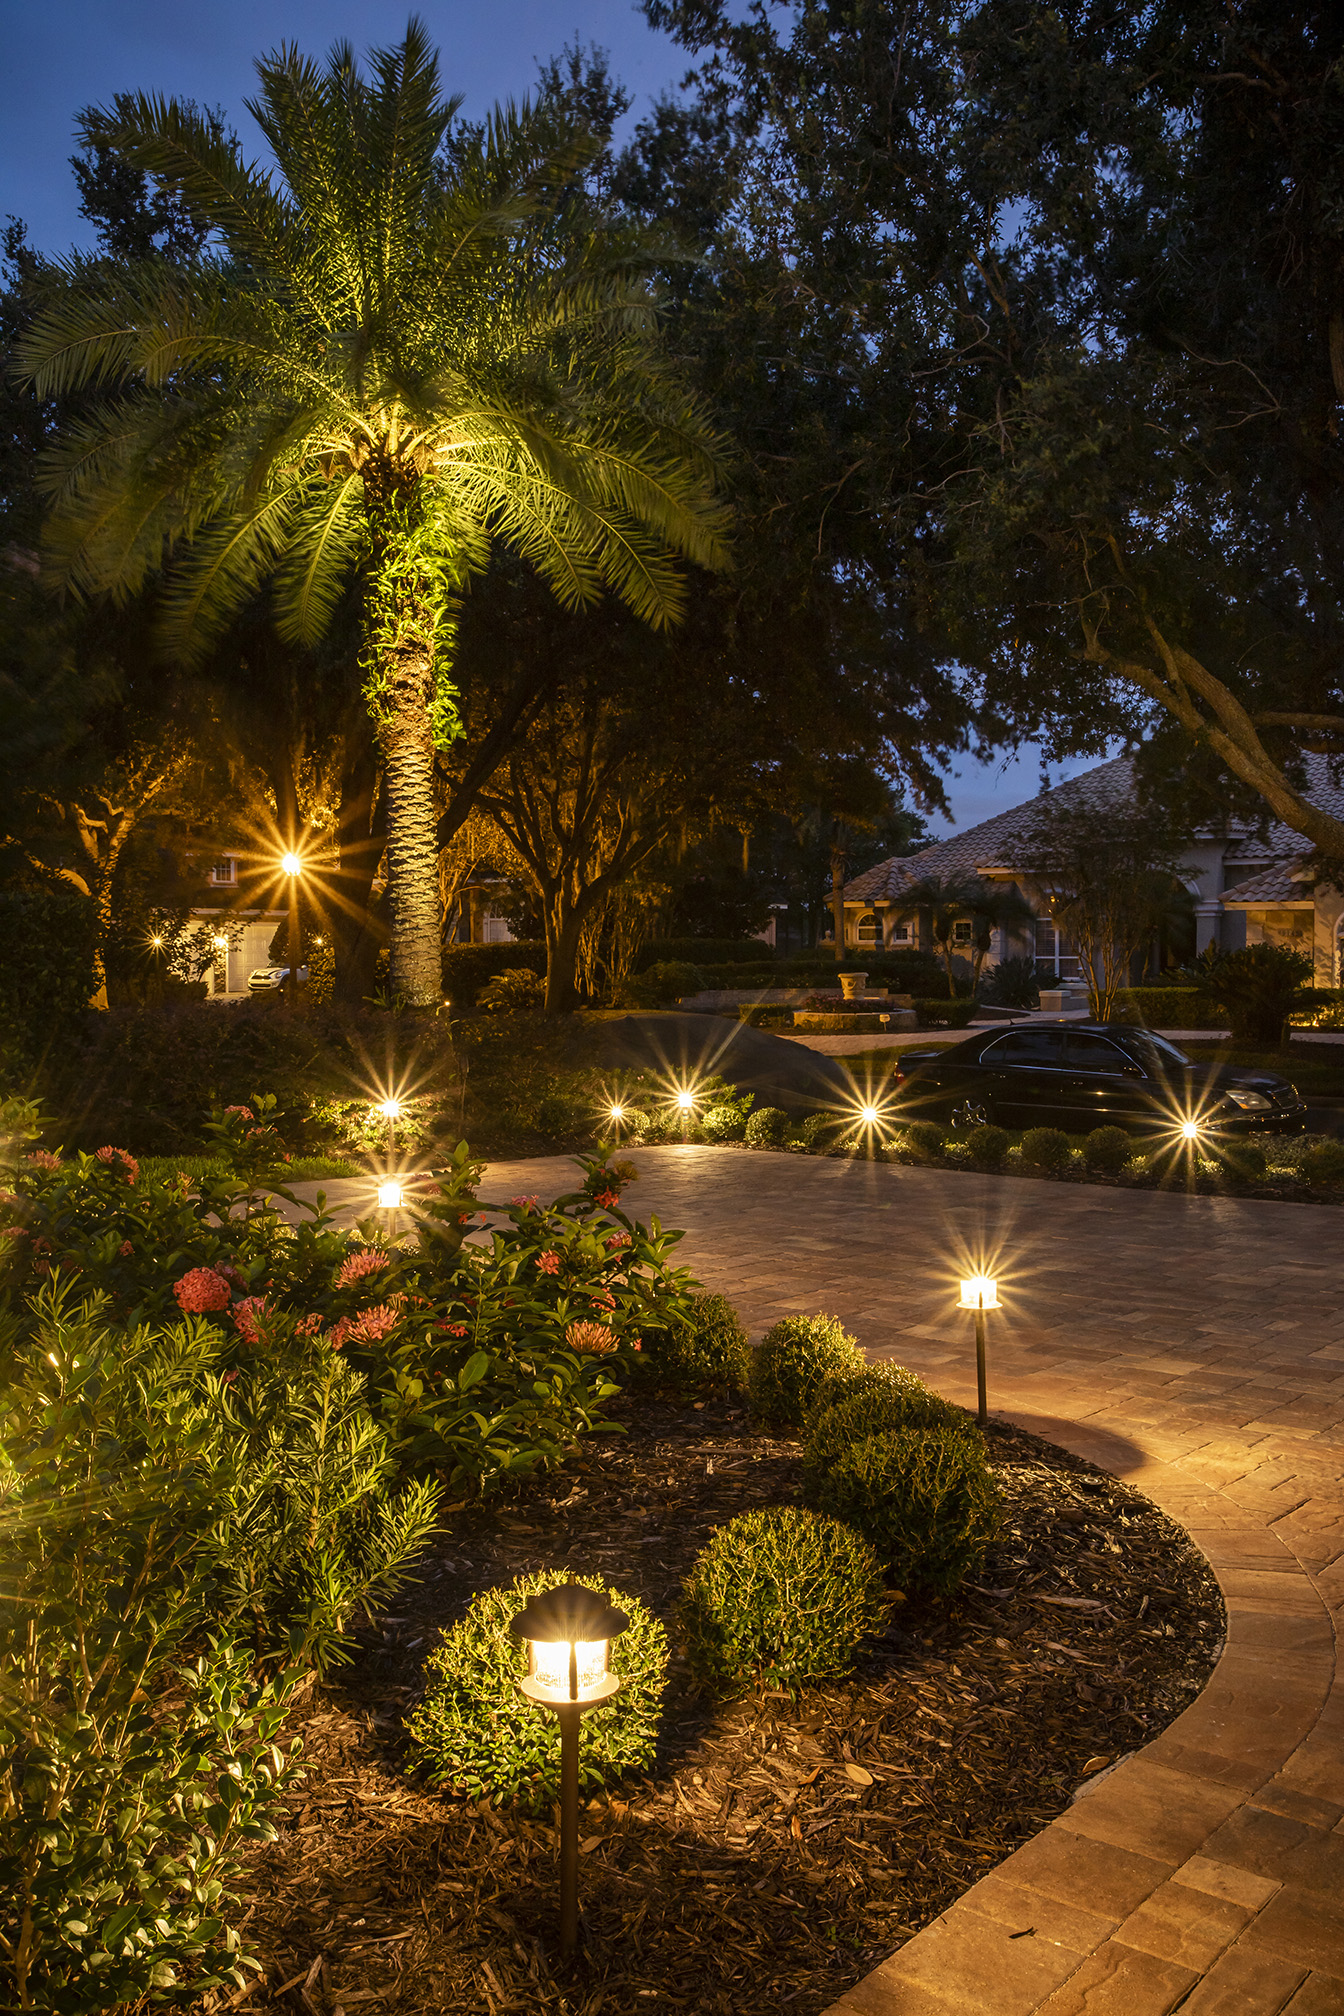 landscape lighting for patio, trees and shrubs